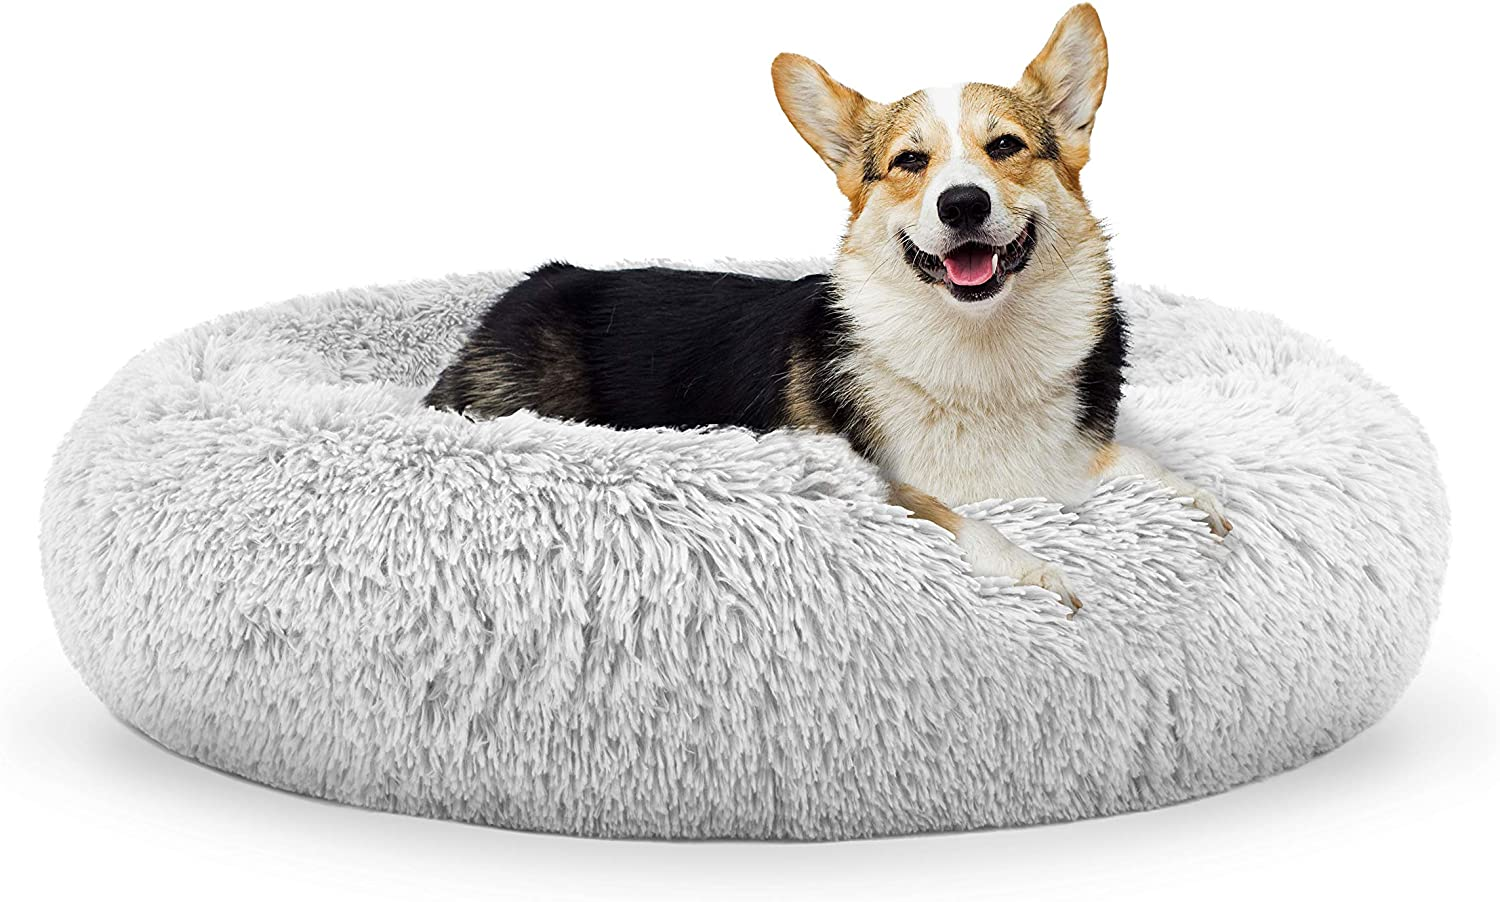 Best Beds for Dogs Who like to Burrow